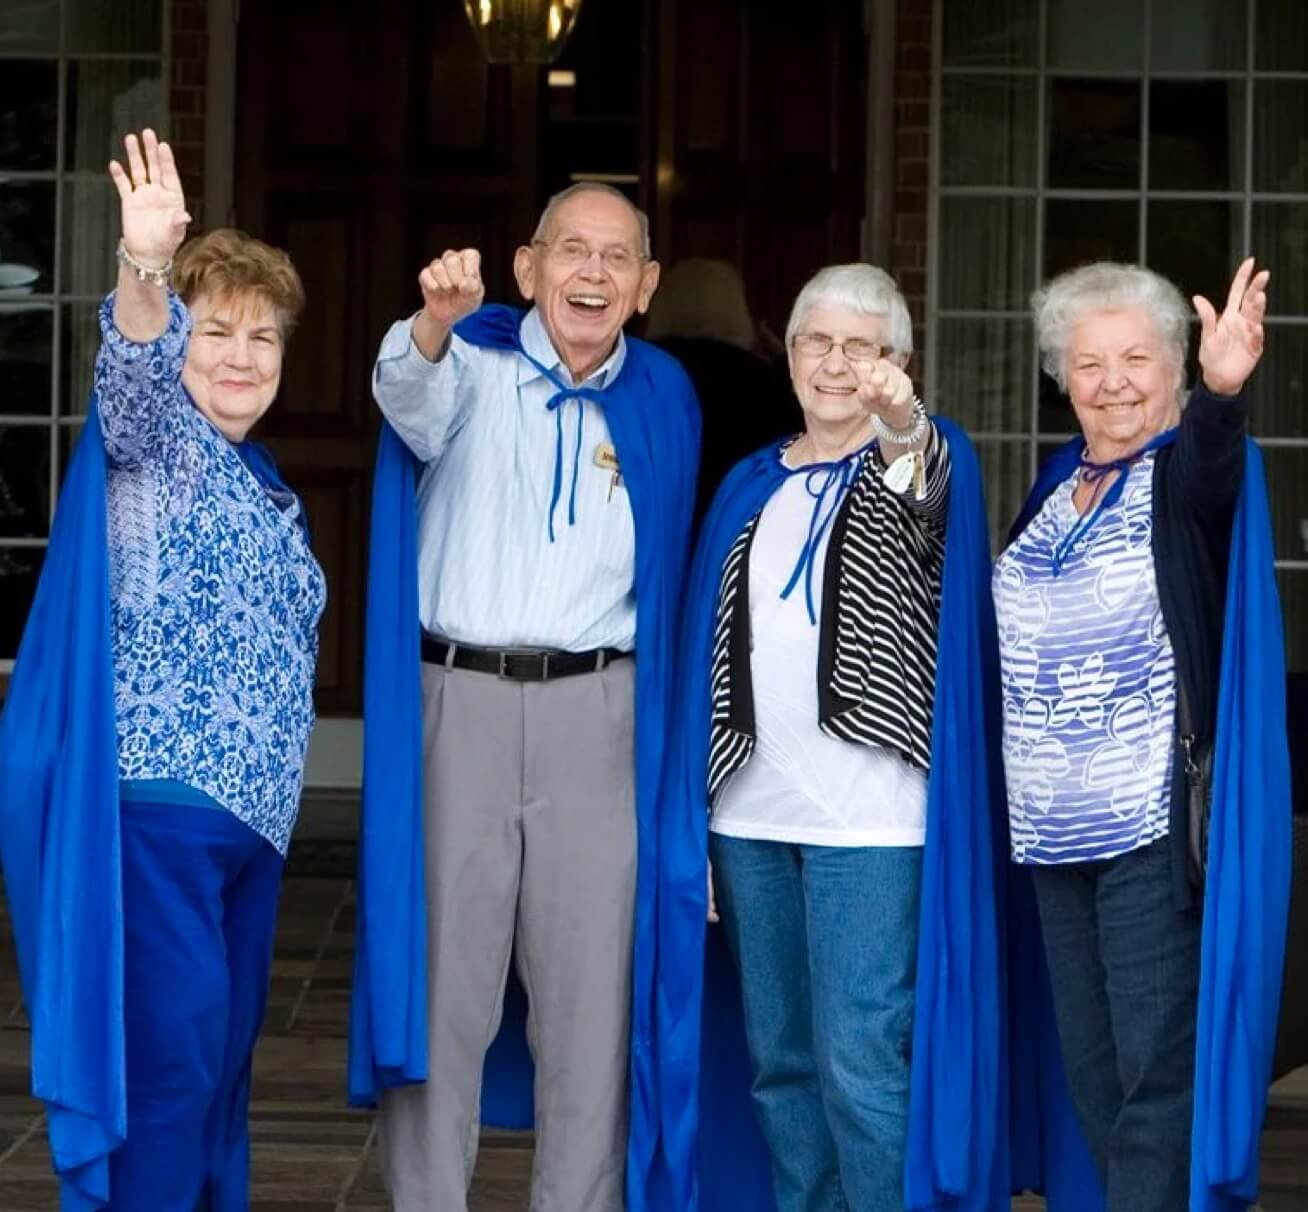 Arbor residents dressed in capes